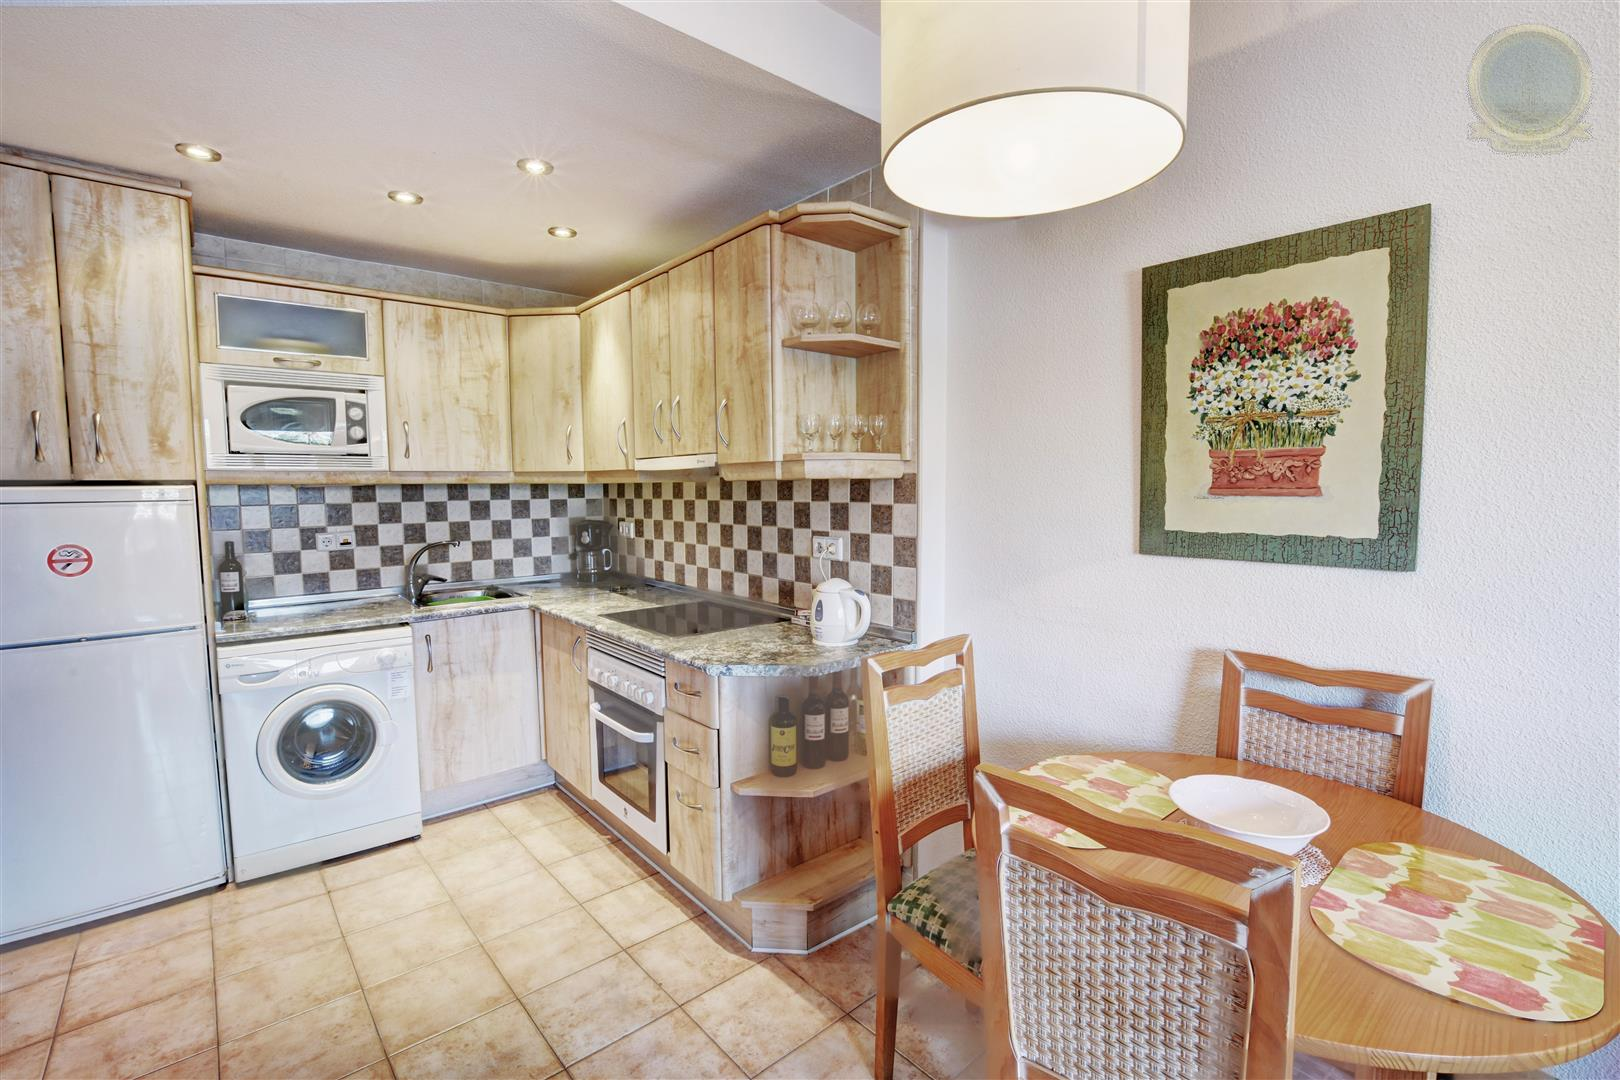 apartment for sale in Benalmadena Costa - Kitchen